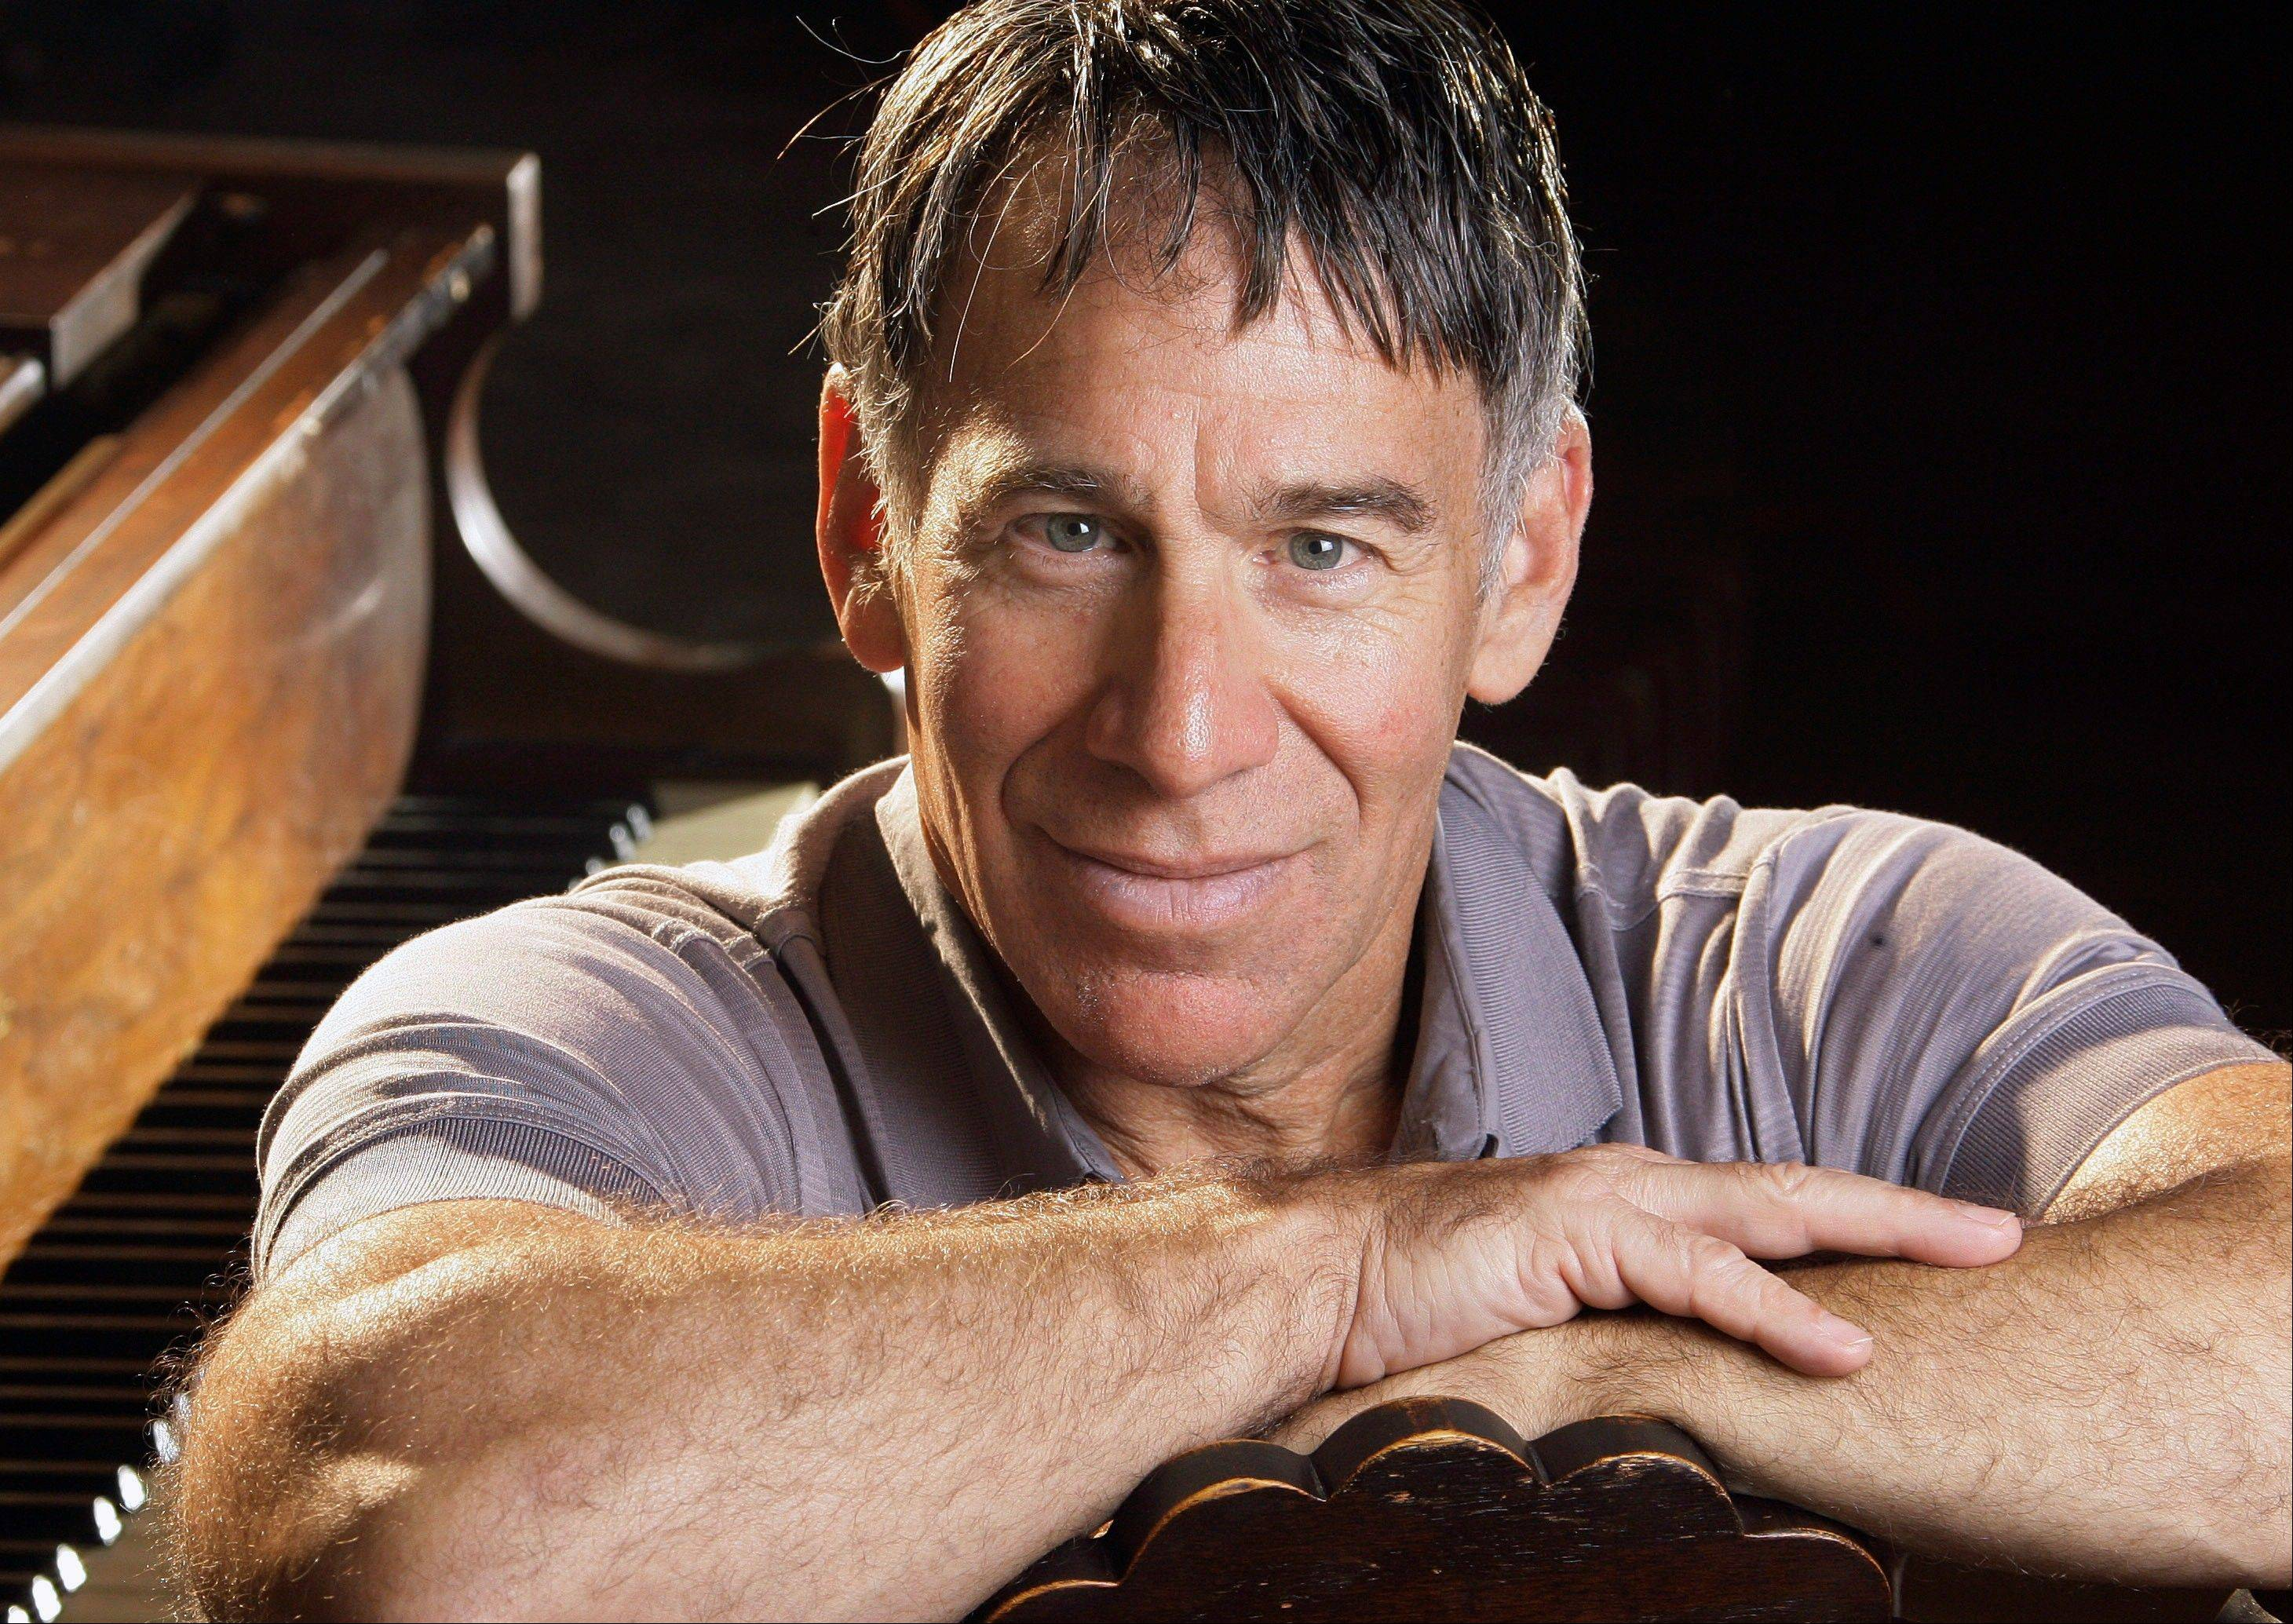 Acclaimed Broadway composer Stephen Schwartz said he�s hard at work on a full draft of his next work, the musical �Houdini� that has actor �Hugh Jackman� playing the legendary illusionist. He hopes to debut the show in Chicago before moving it to Broadway.